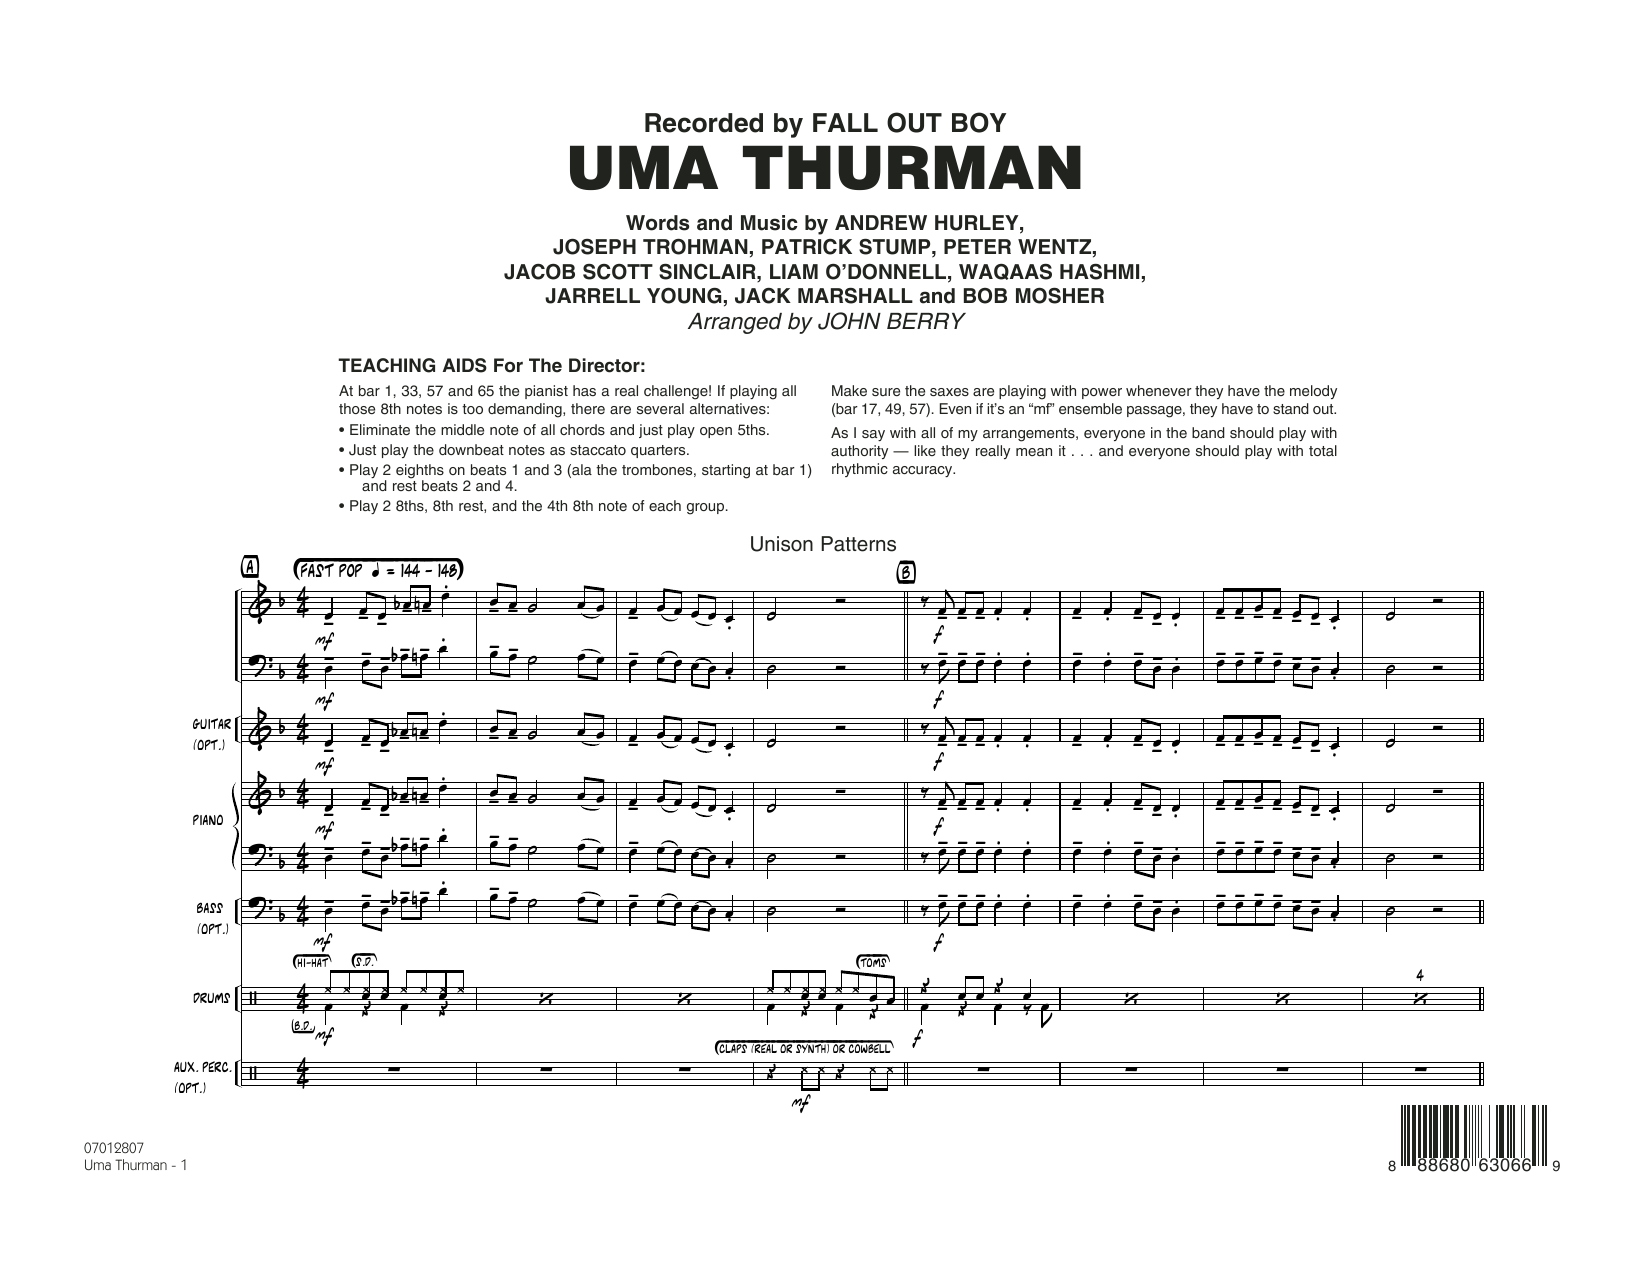 Uma Thurman (COMPLETE) sheet music for jazz band by Fall Out Boy, Jack Marshall and John Berry. Score Image Preview.